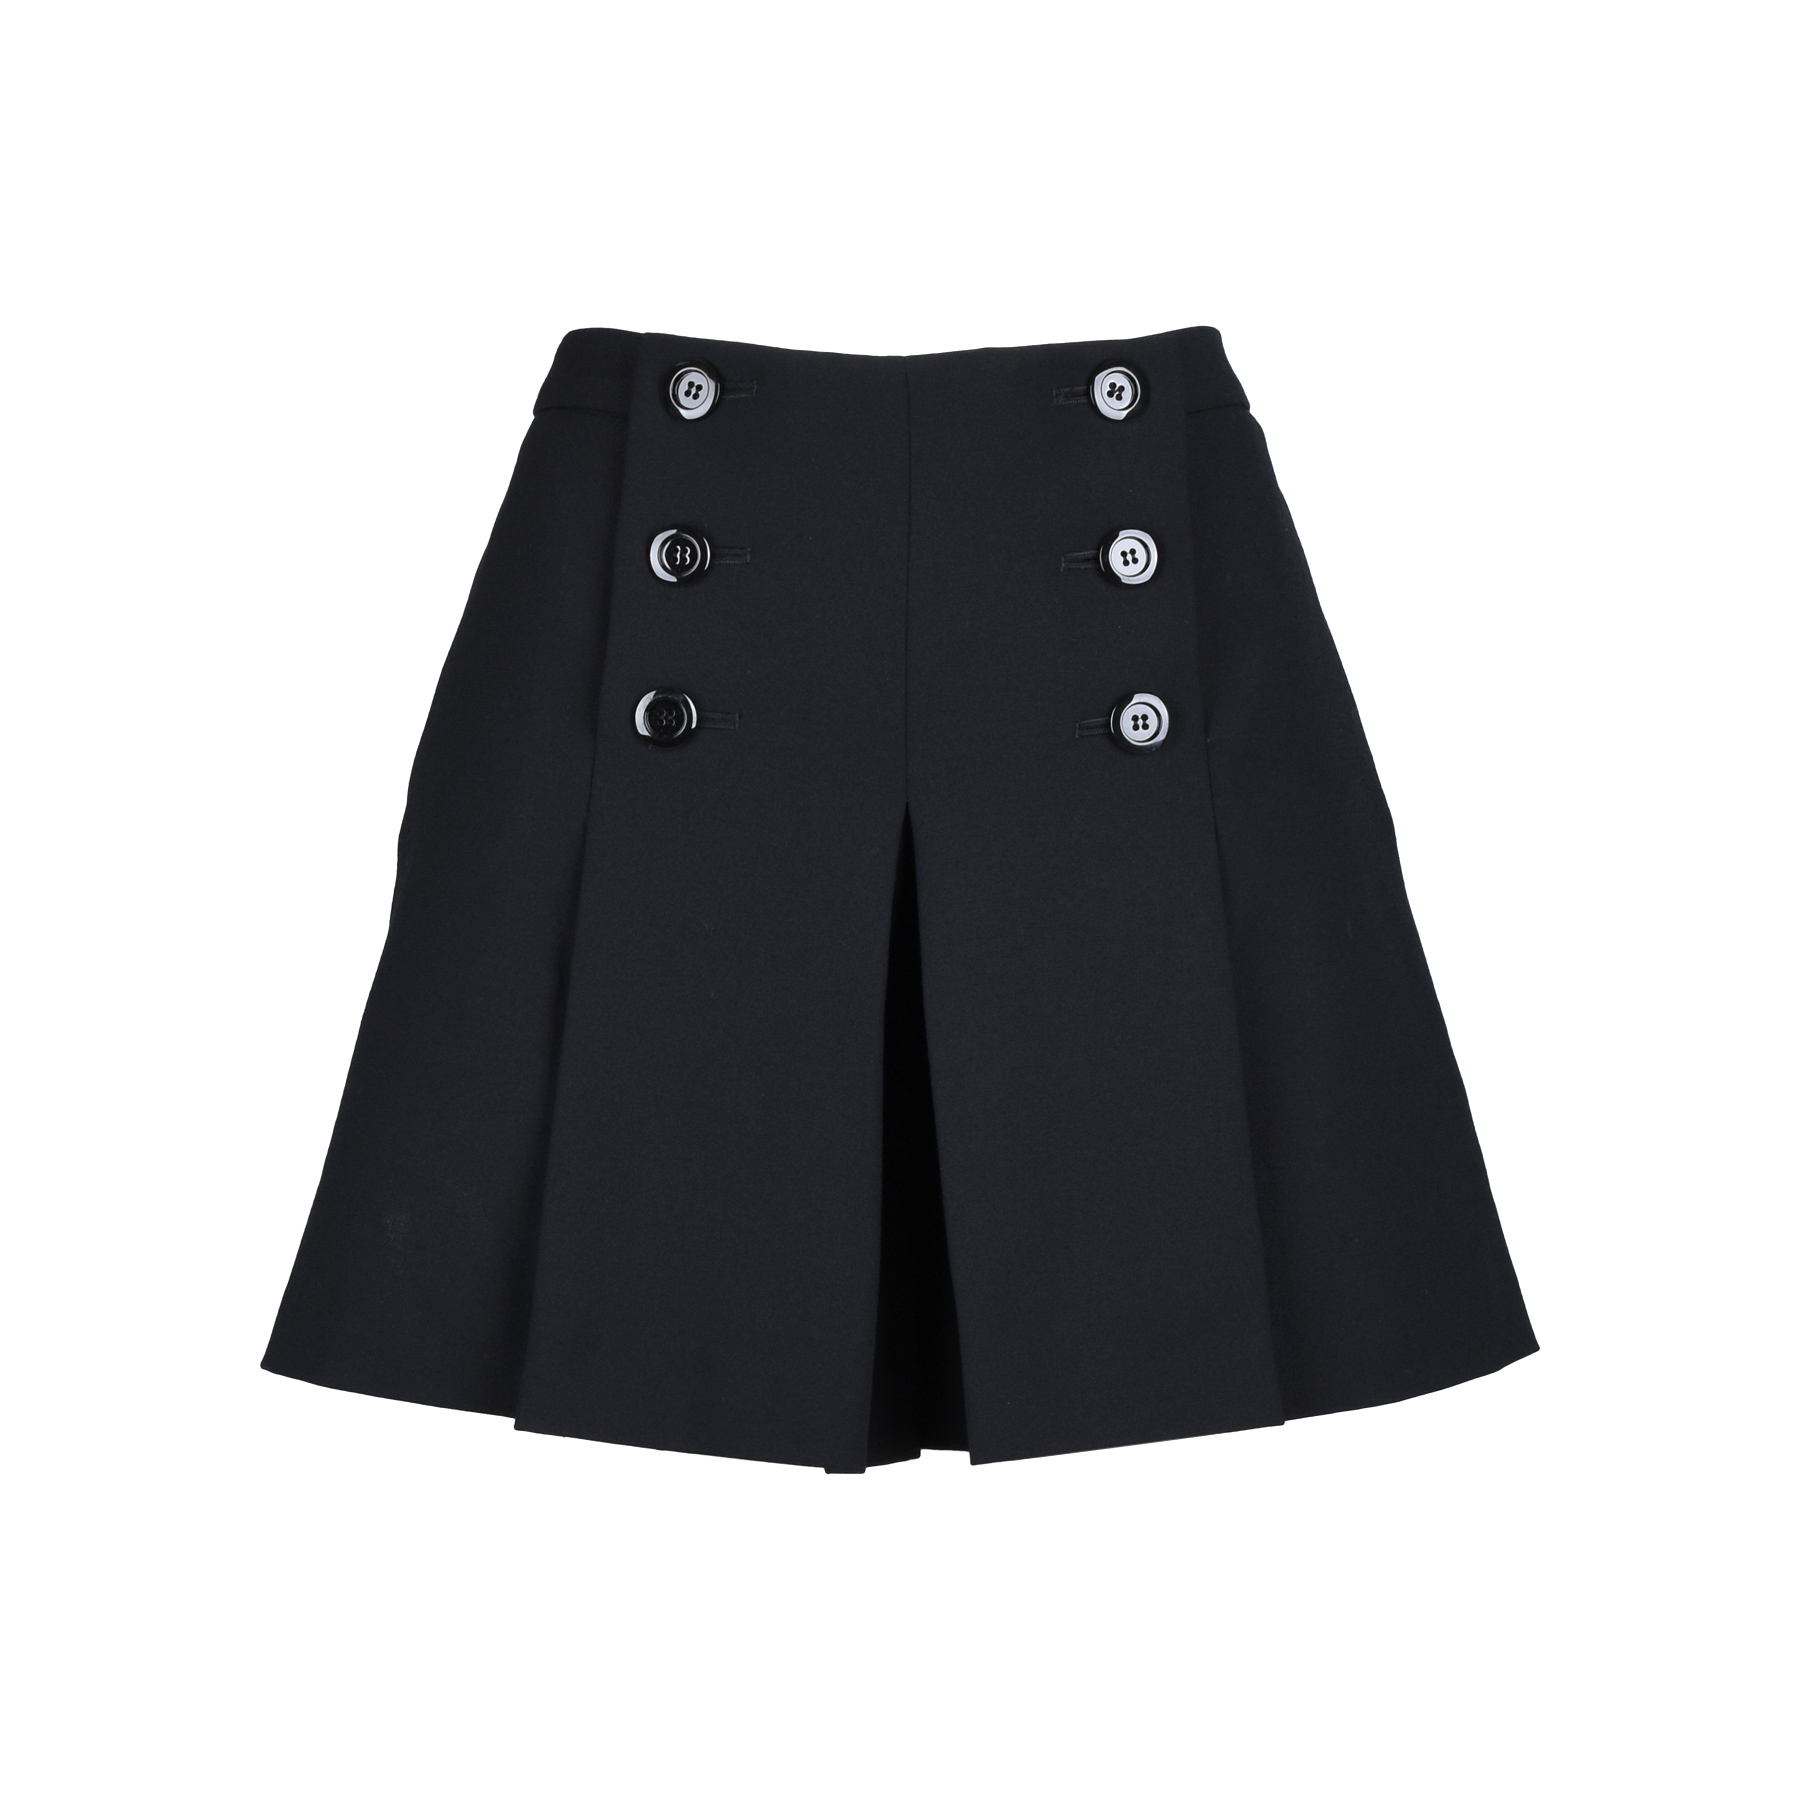 Authentic Pre Owned Red Valentino Sailor Shorts Pss-200